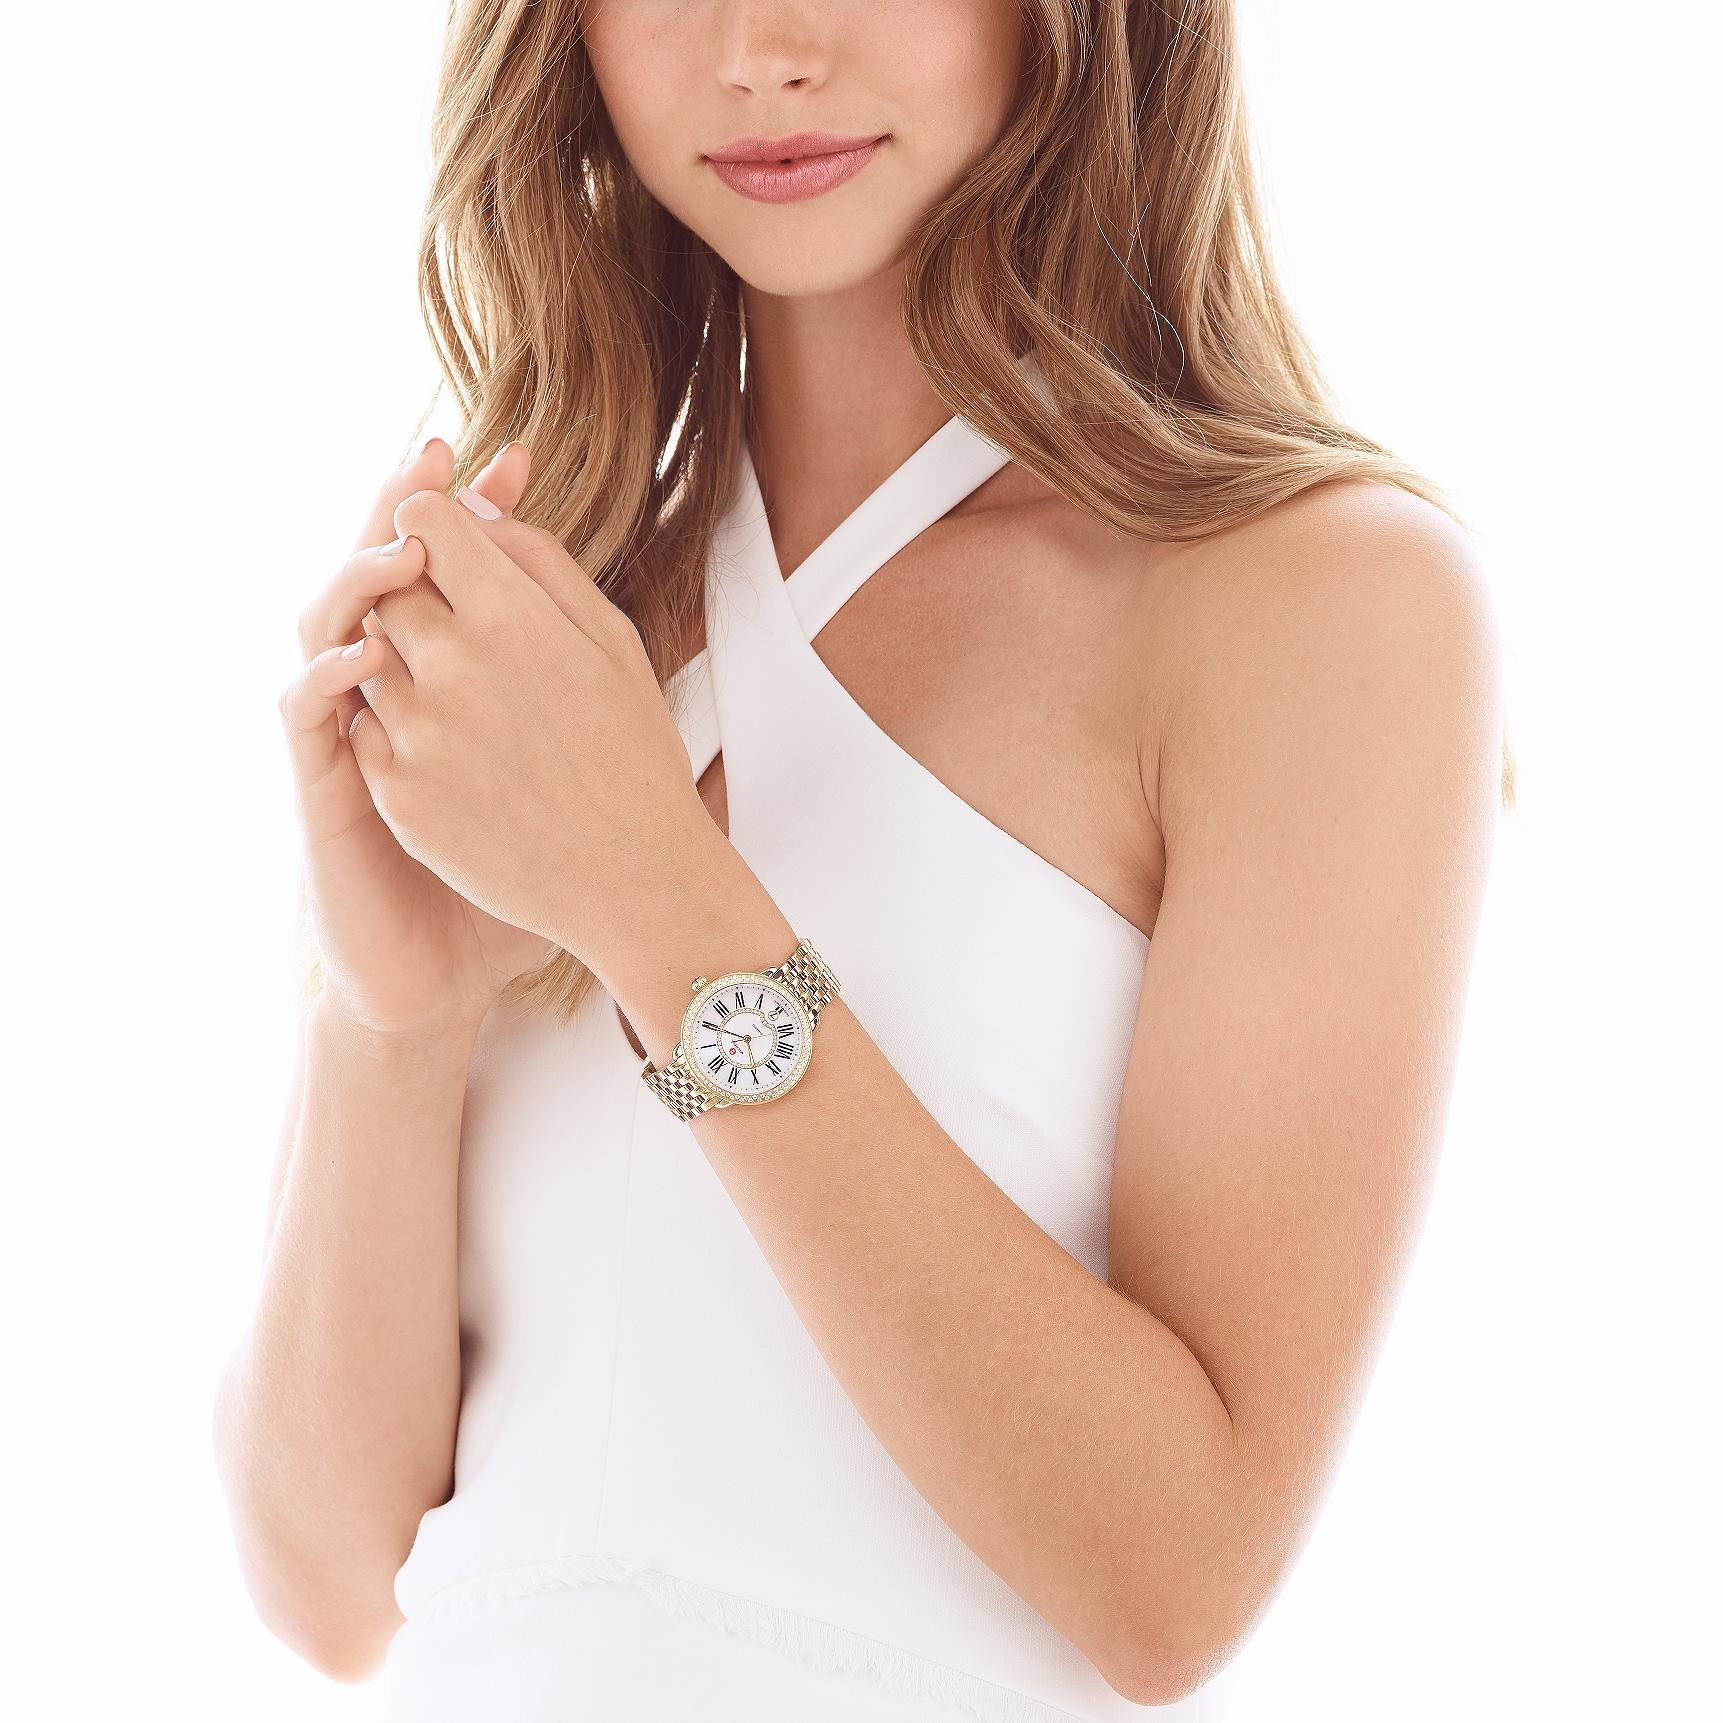 Michele Serein 16 Yellow Gold Mother of Pearl Dial with Diamond Bezel Watch on Model